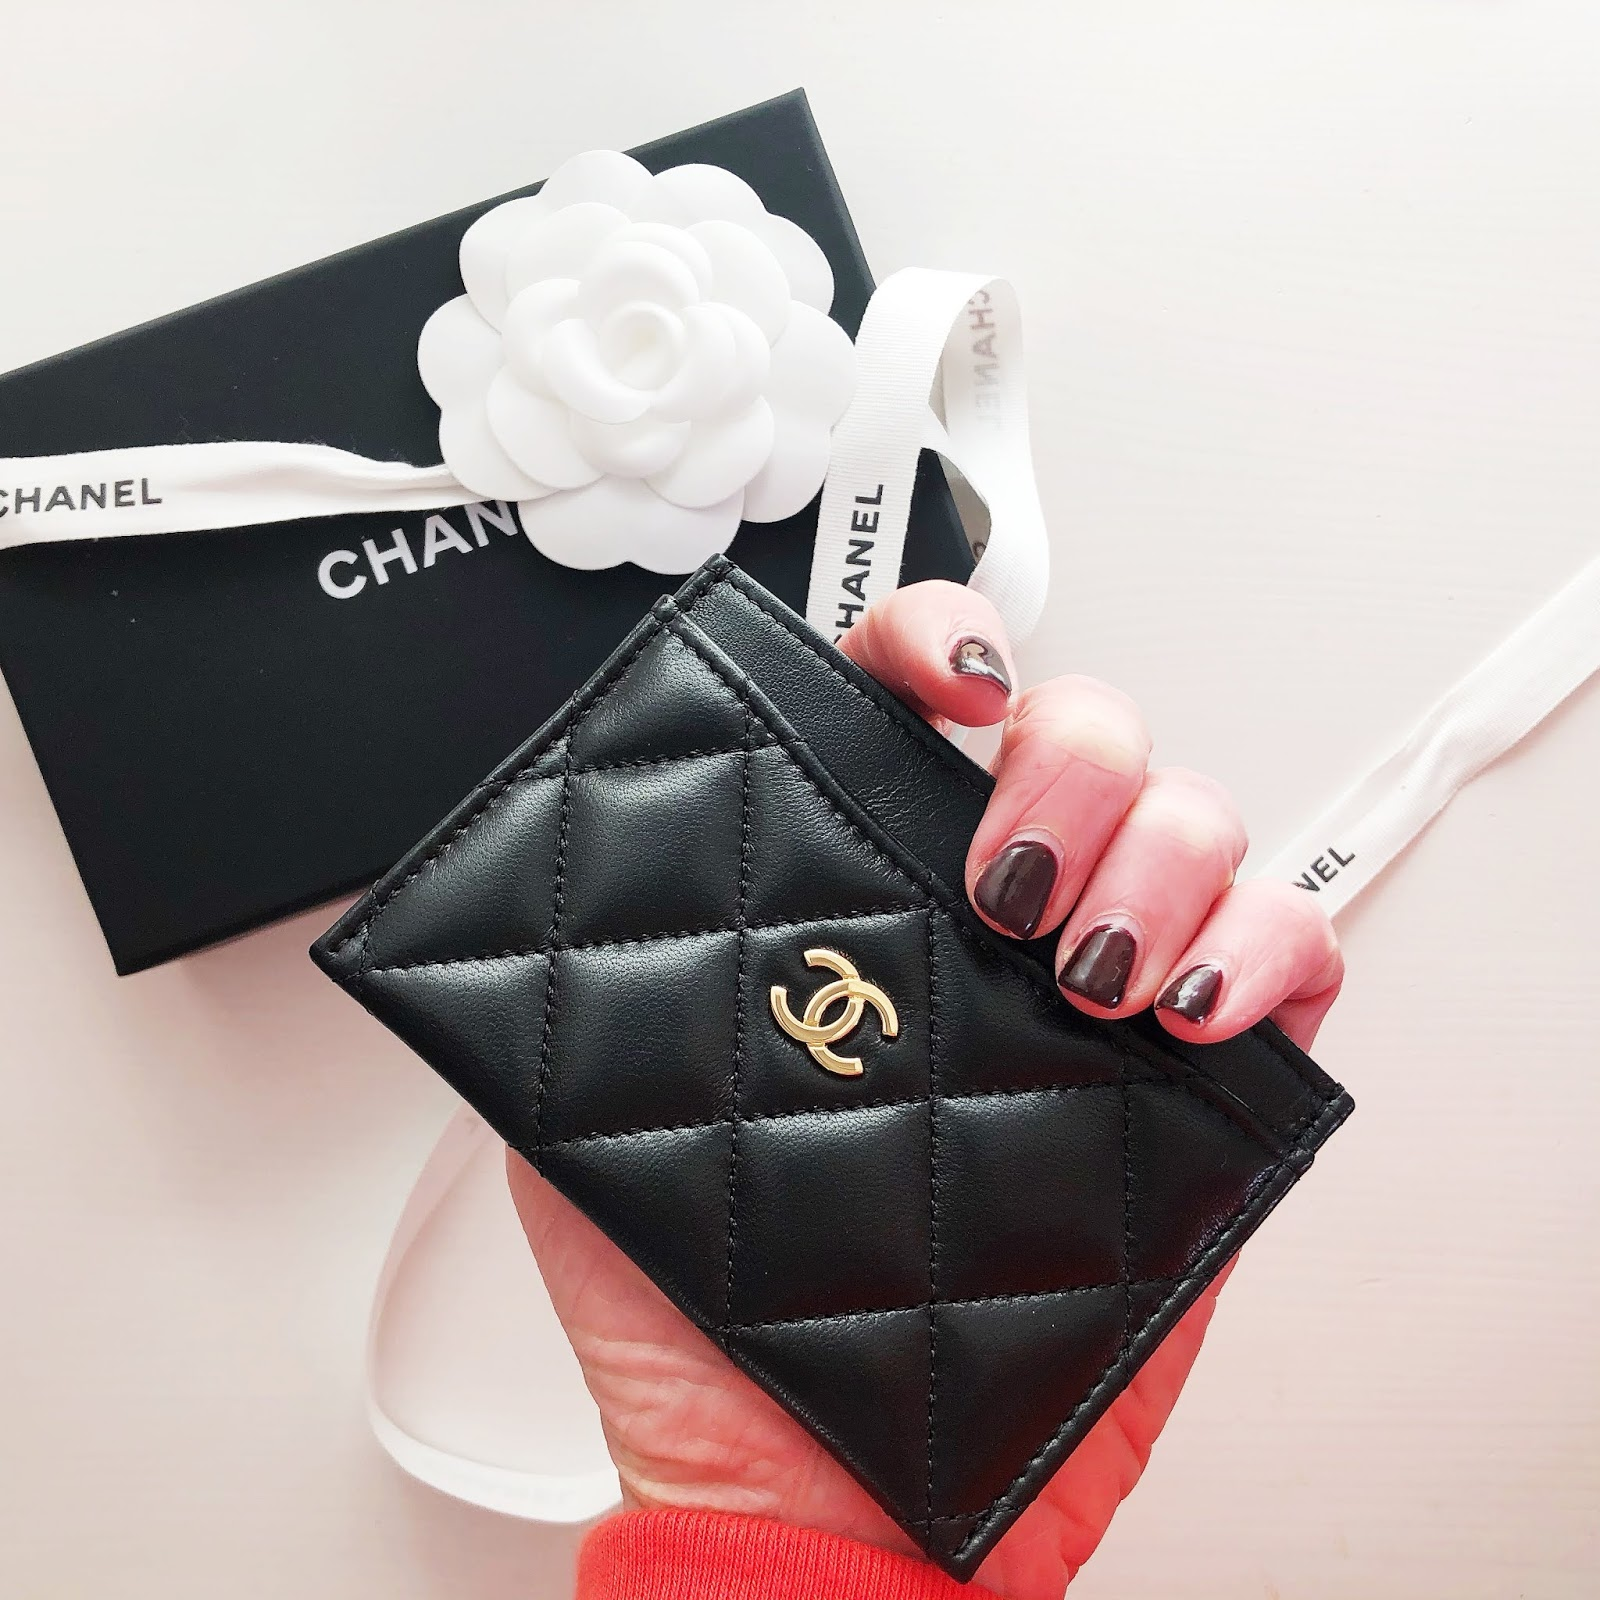 My October Days - Chanel